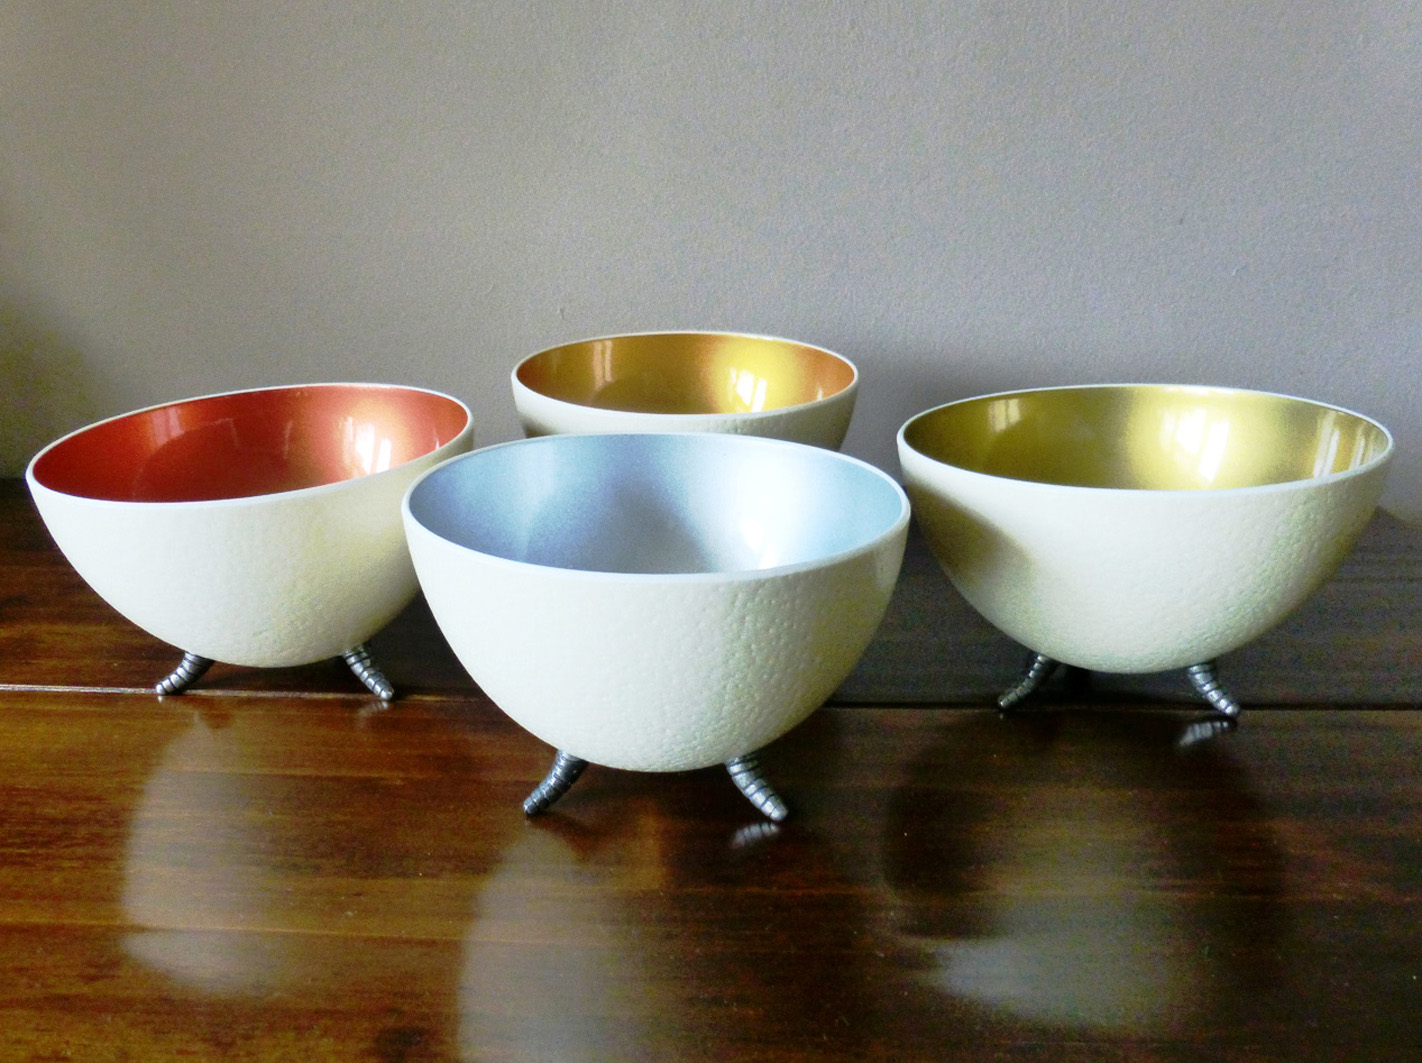 Image of Ostrich Egg Bowls, with coloured interiors.